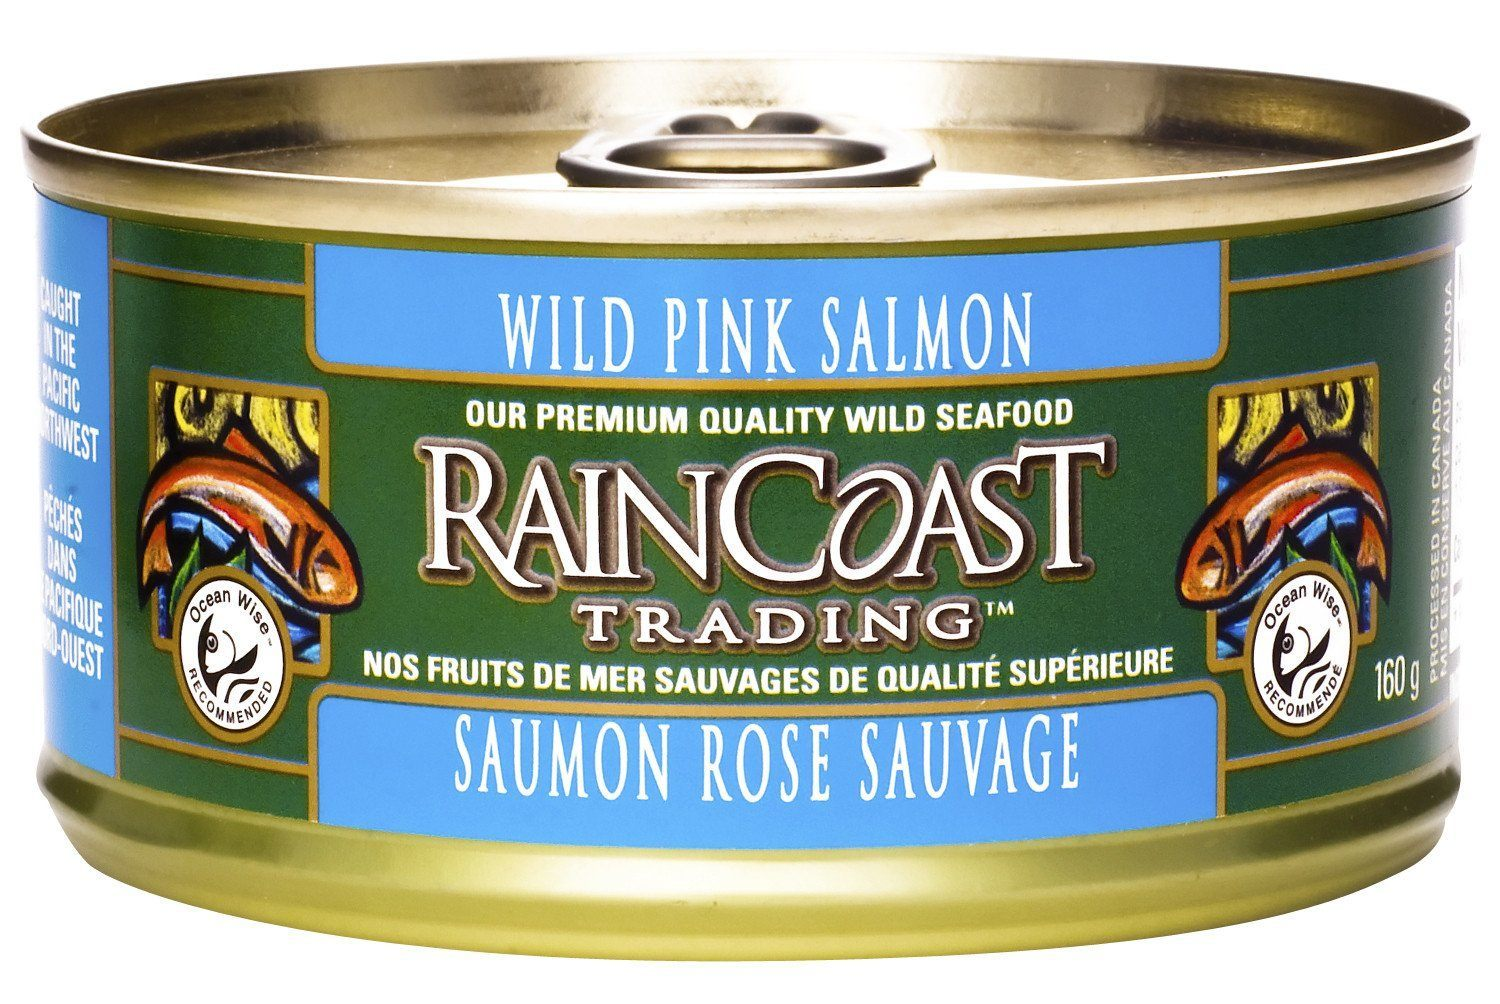 Food & Drink - Raincoast Trading - Wild Pink Salmon, 160g